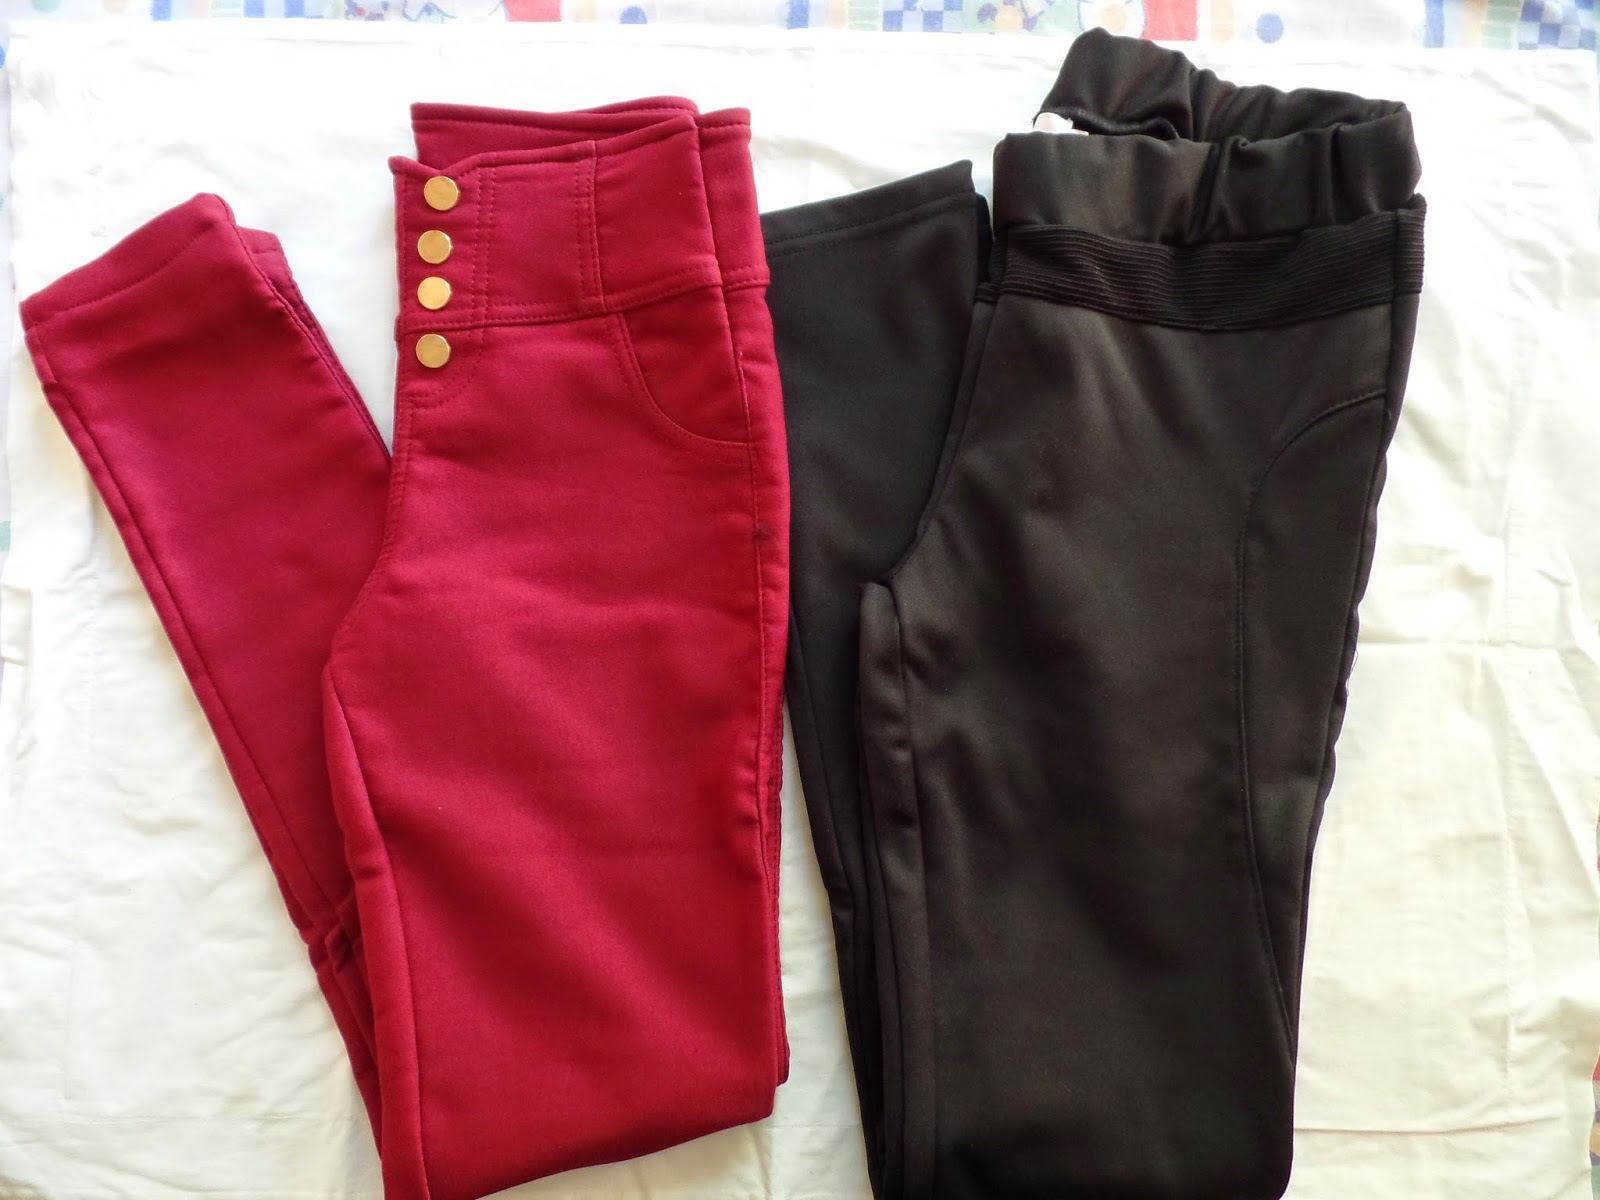 https://www.eyeboxs.com/womens-elastic-waist-skinny-stretchy-thicken-wool-leggings-pants-tights-p809-p-3283.html